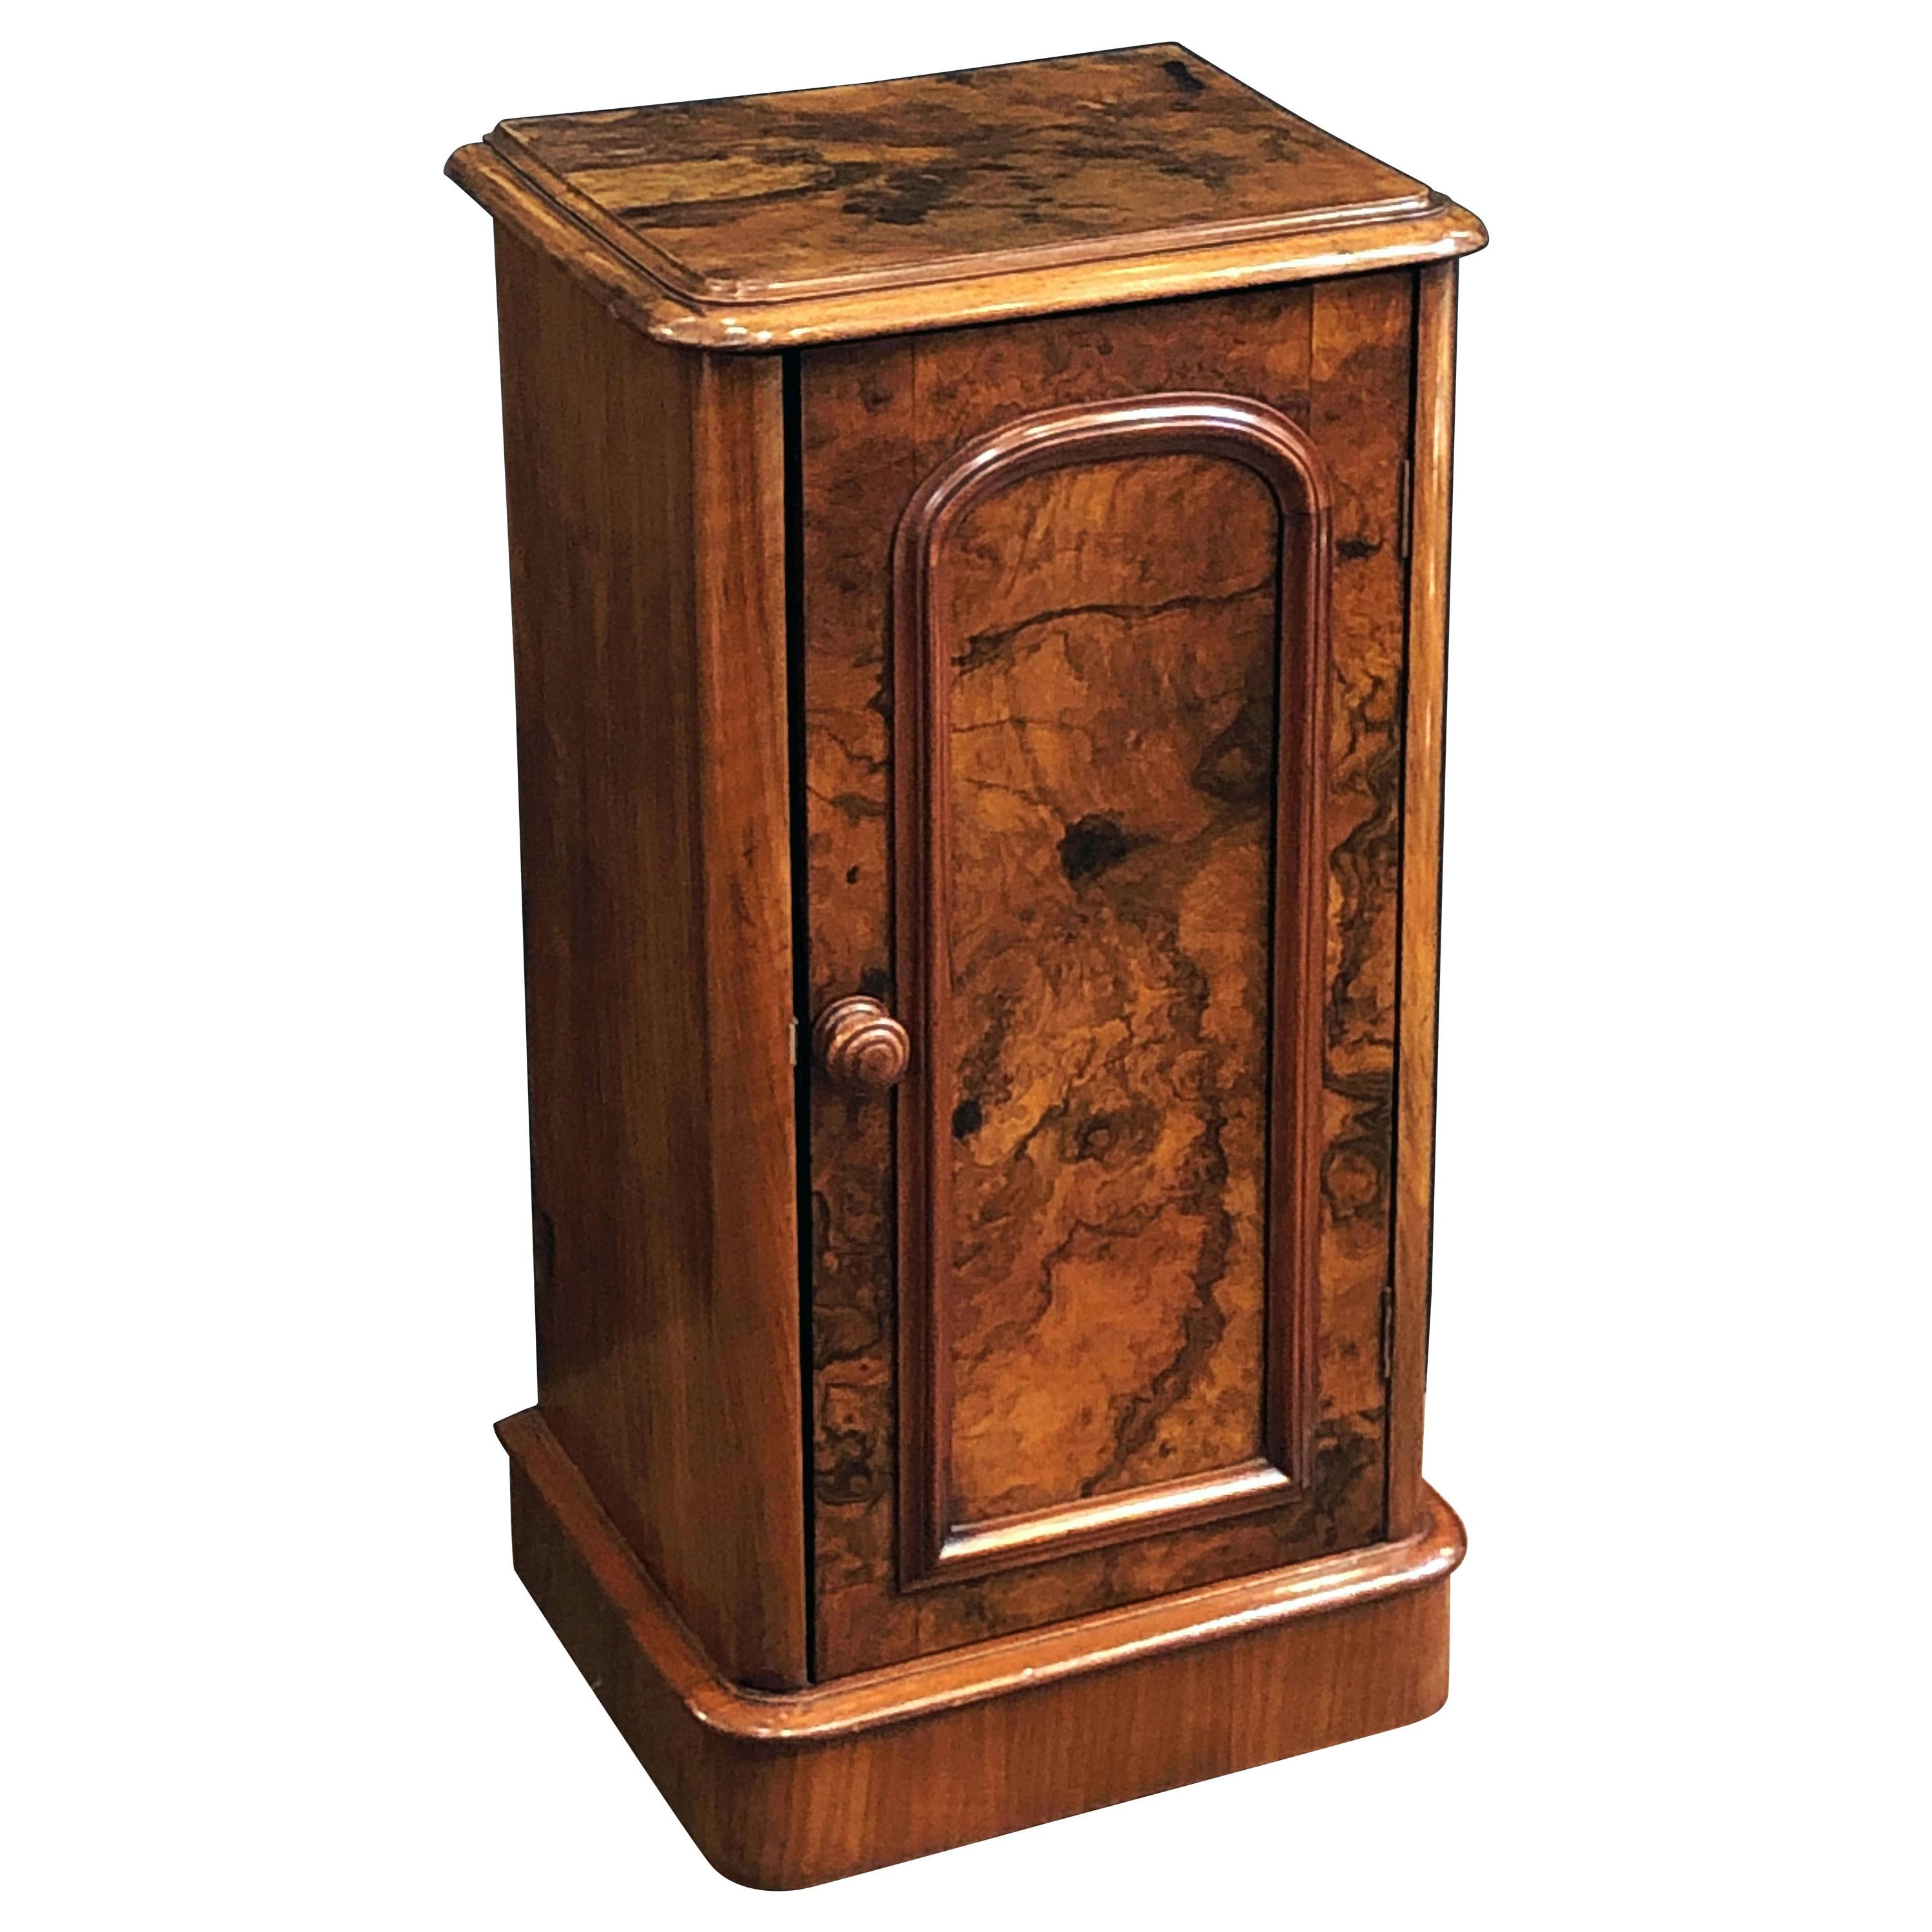 French Nightstand or Bedside Table of Burled Walnut